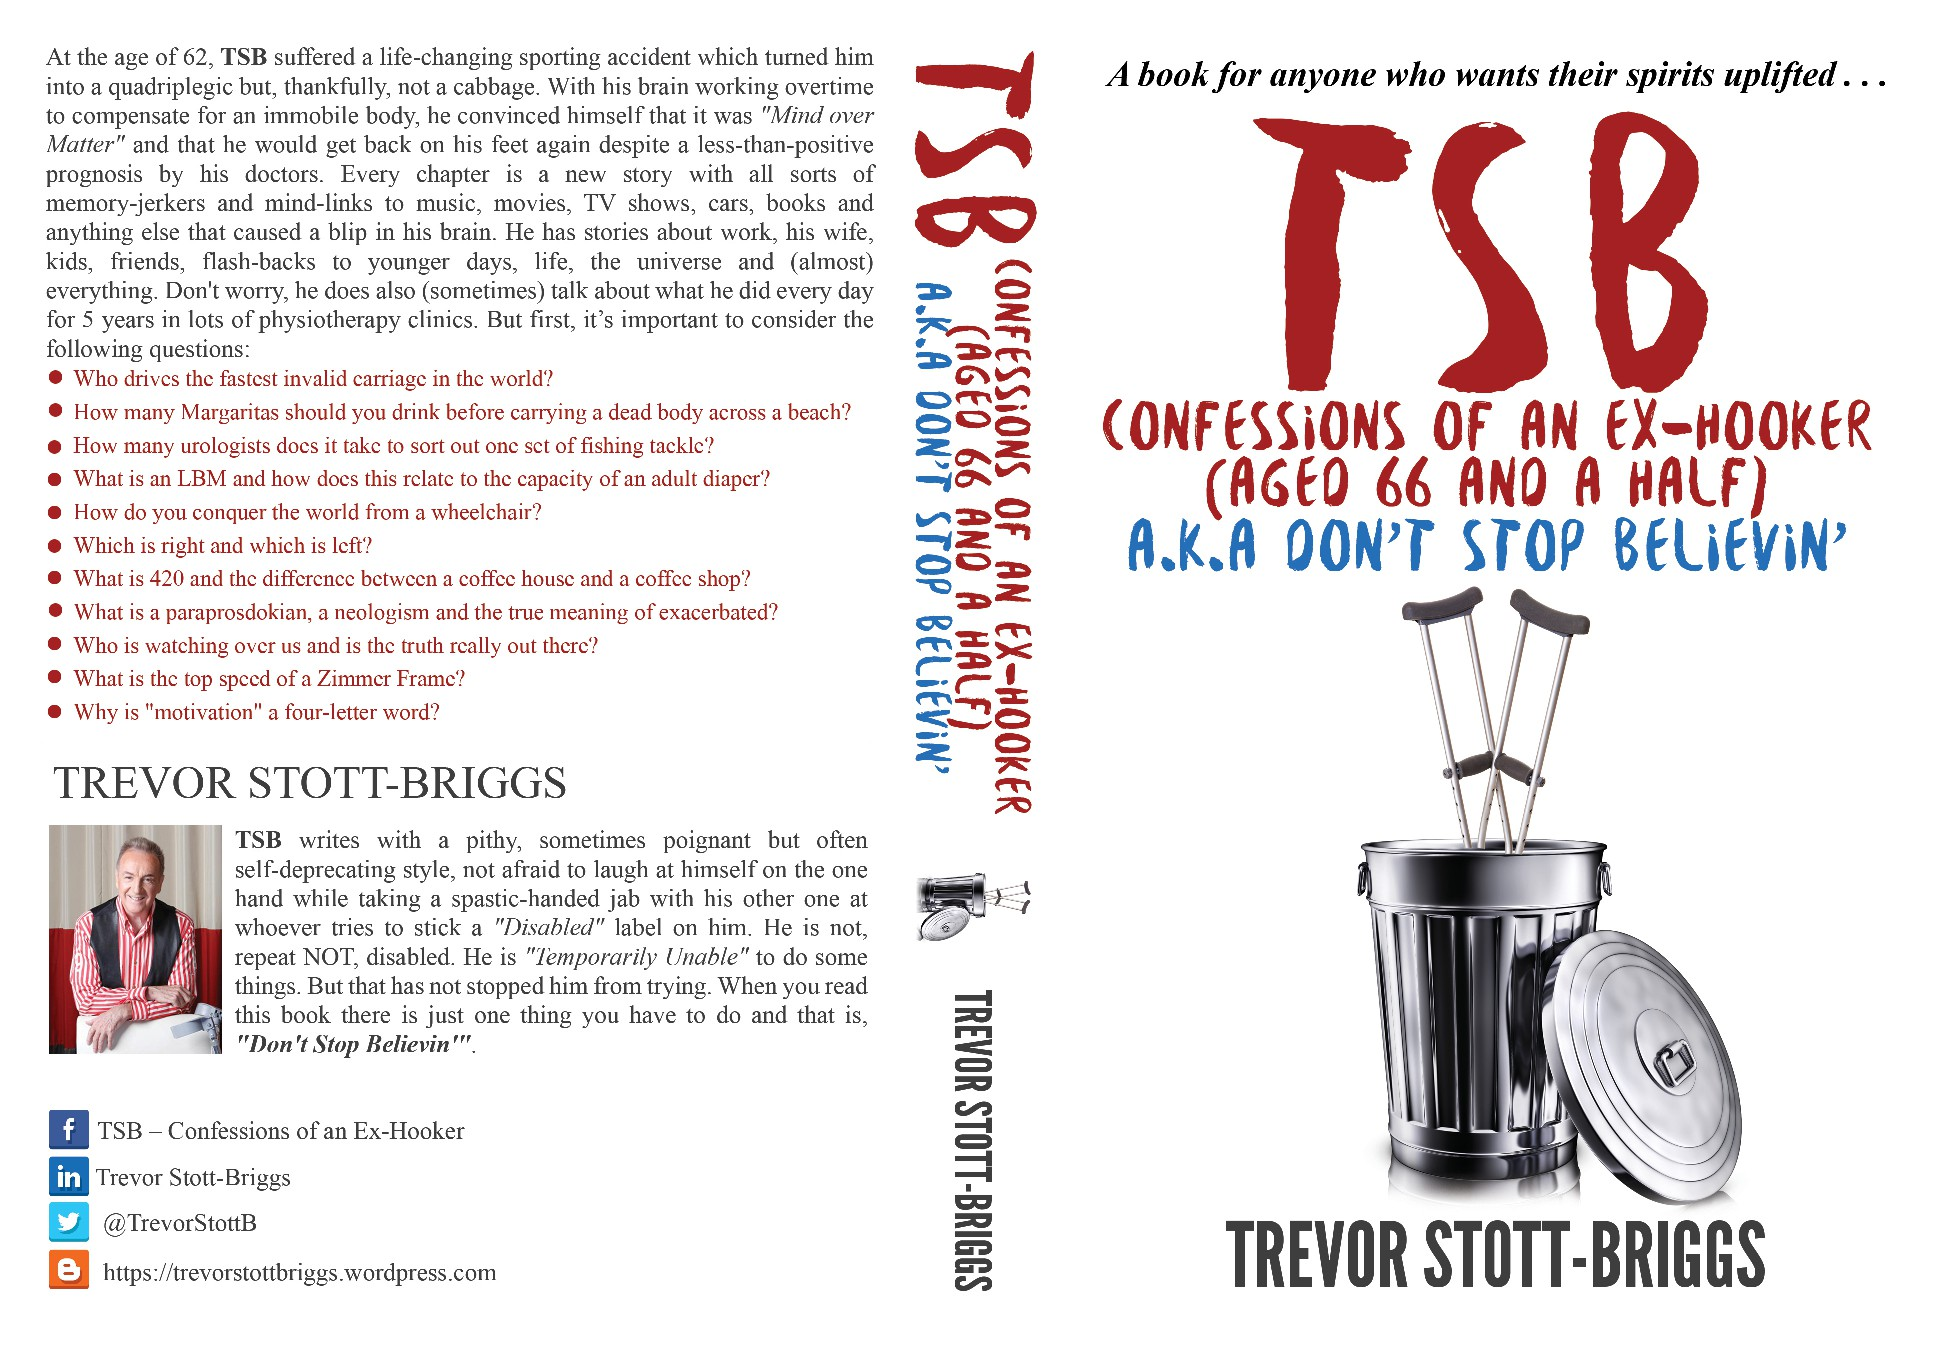 Design a cover for the first million seller of the TSB - CONFESSIONS series